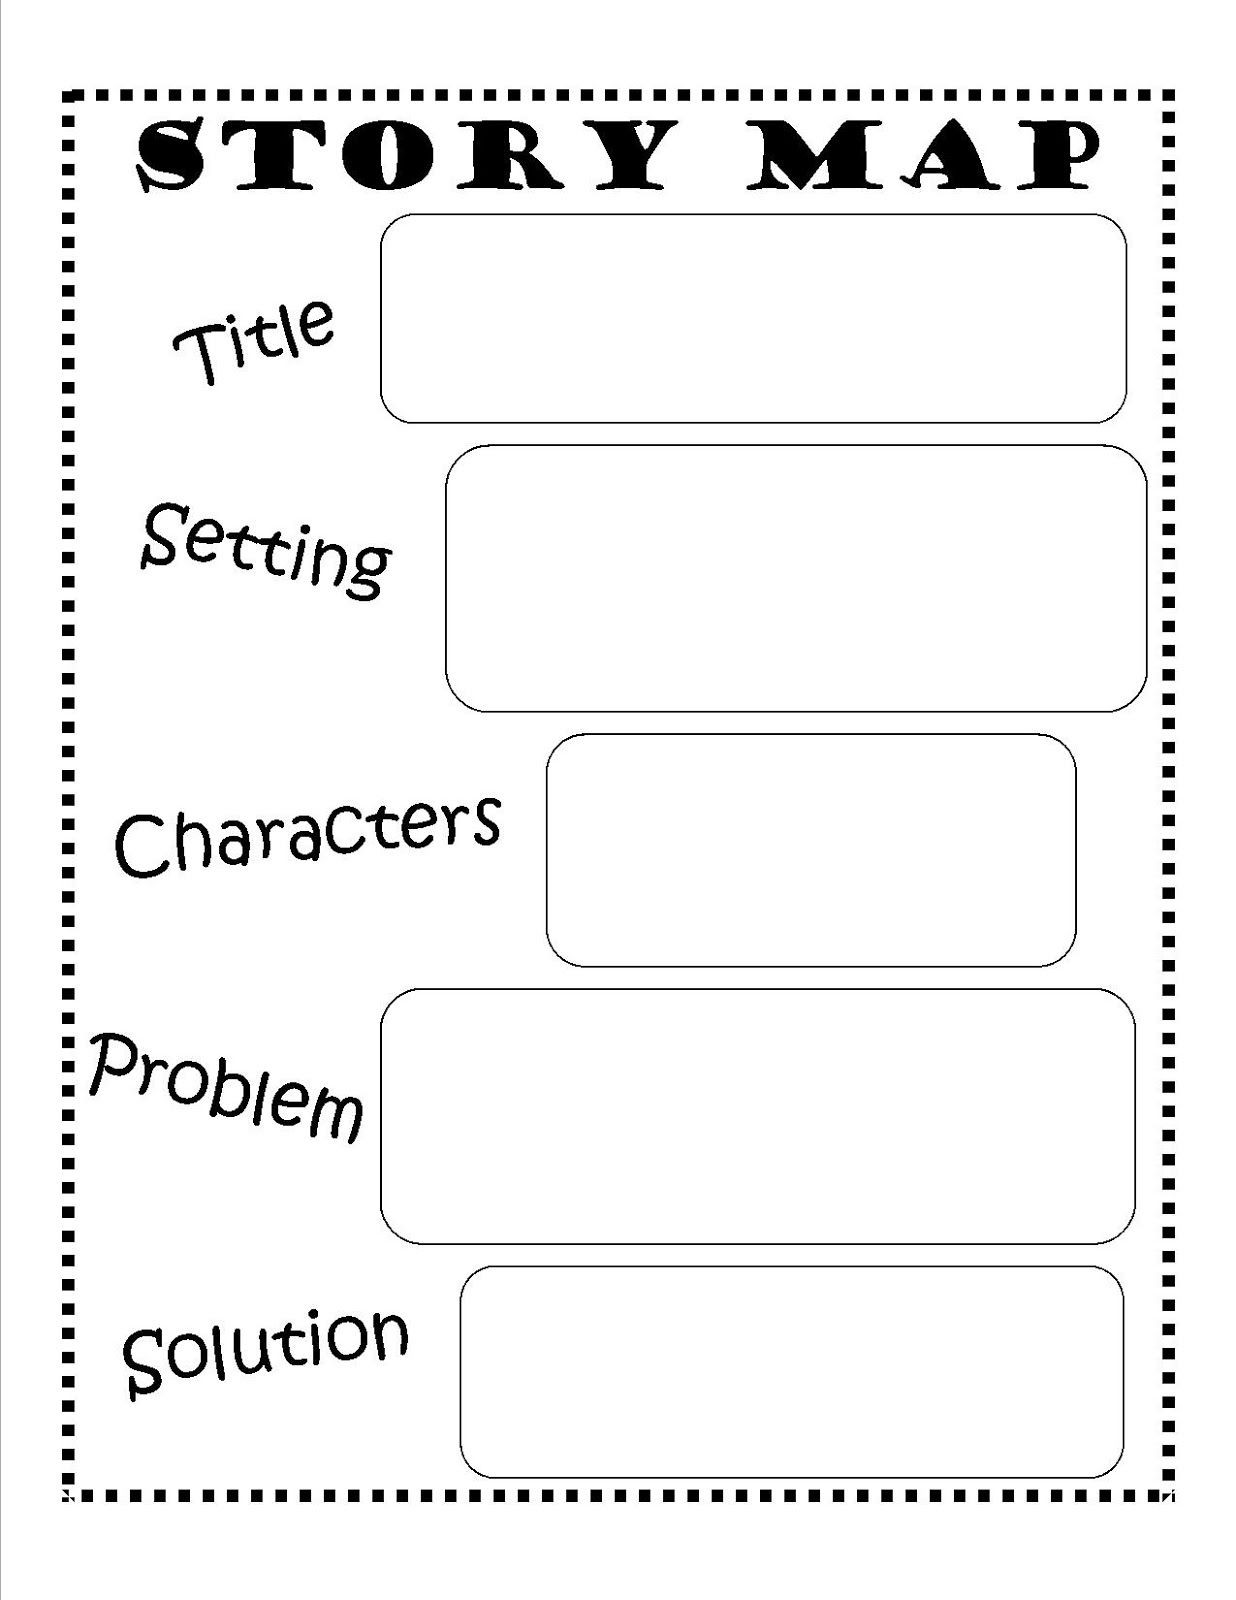 Story Elements Worksheet 5th Grade Story Map topographic Maps Worksheets 5th Grade Ytjm96ol In